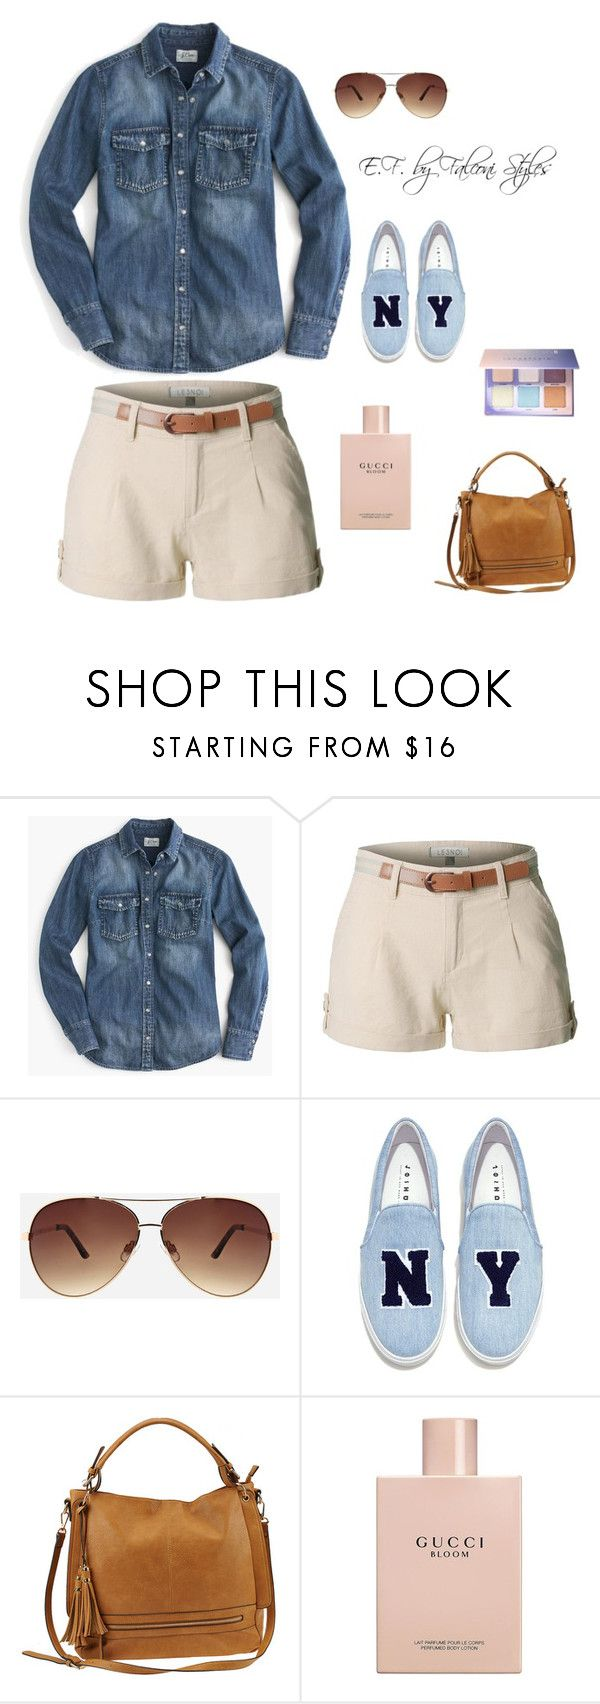 """Untitled #158"" by bellascurvas ❤ liked on Polyvore featuring J.Crew, LE3NO, Ashley Stewart, Joshua's, Urban Expressions, Gucci and Anastasia Beverly Hills"